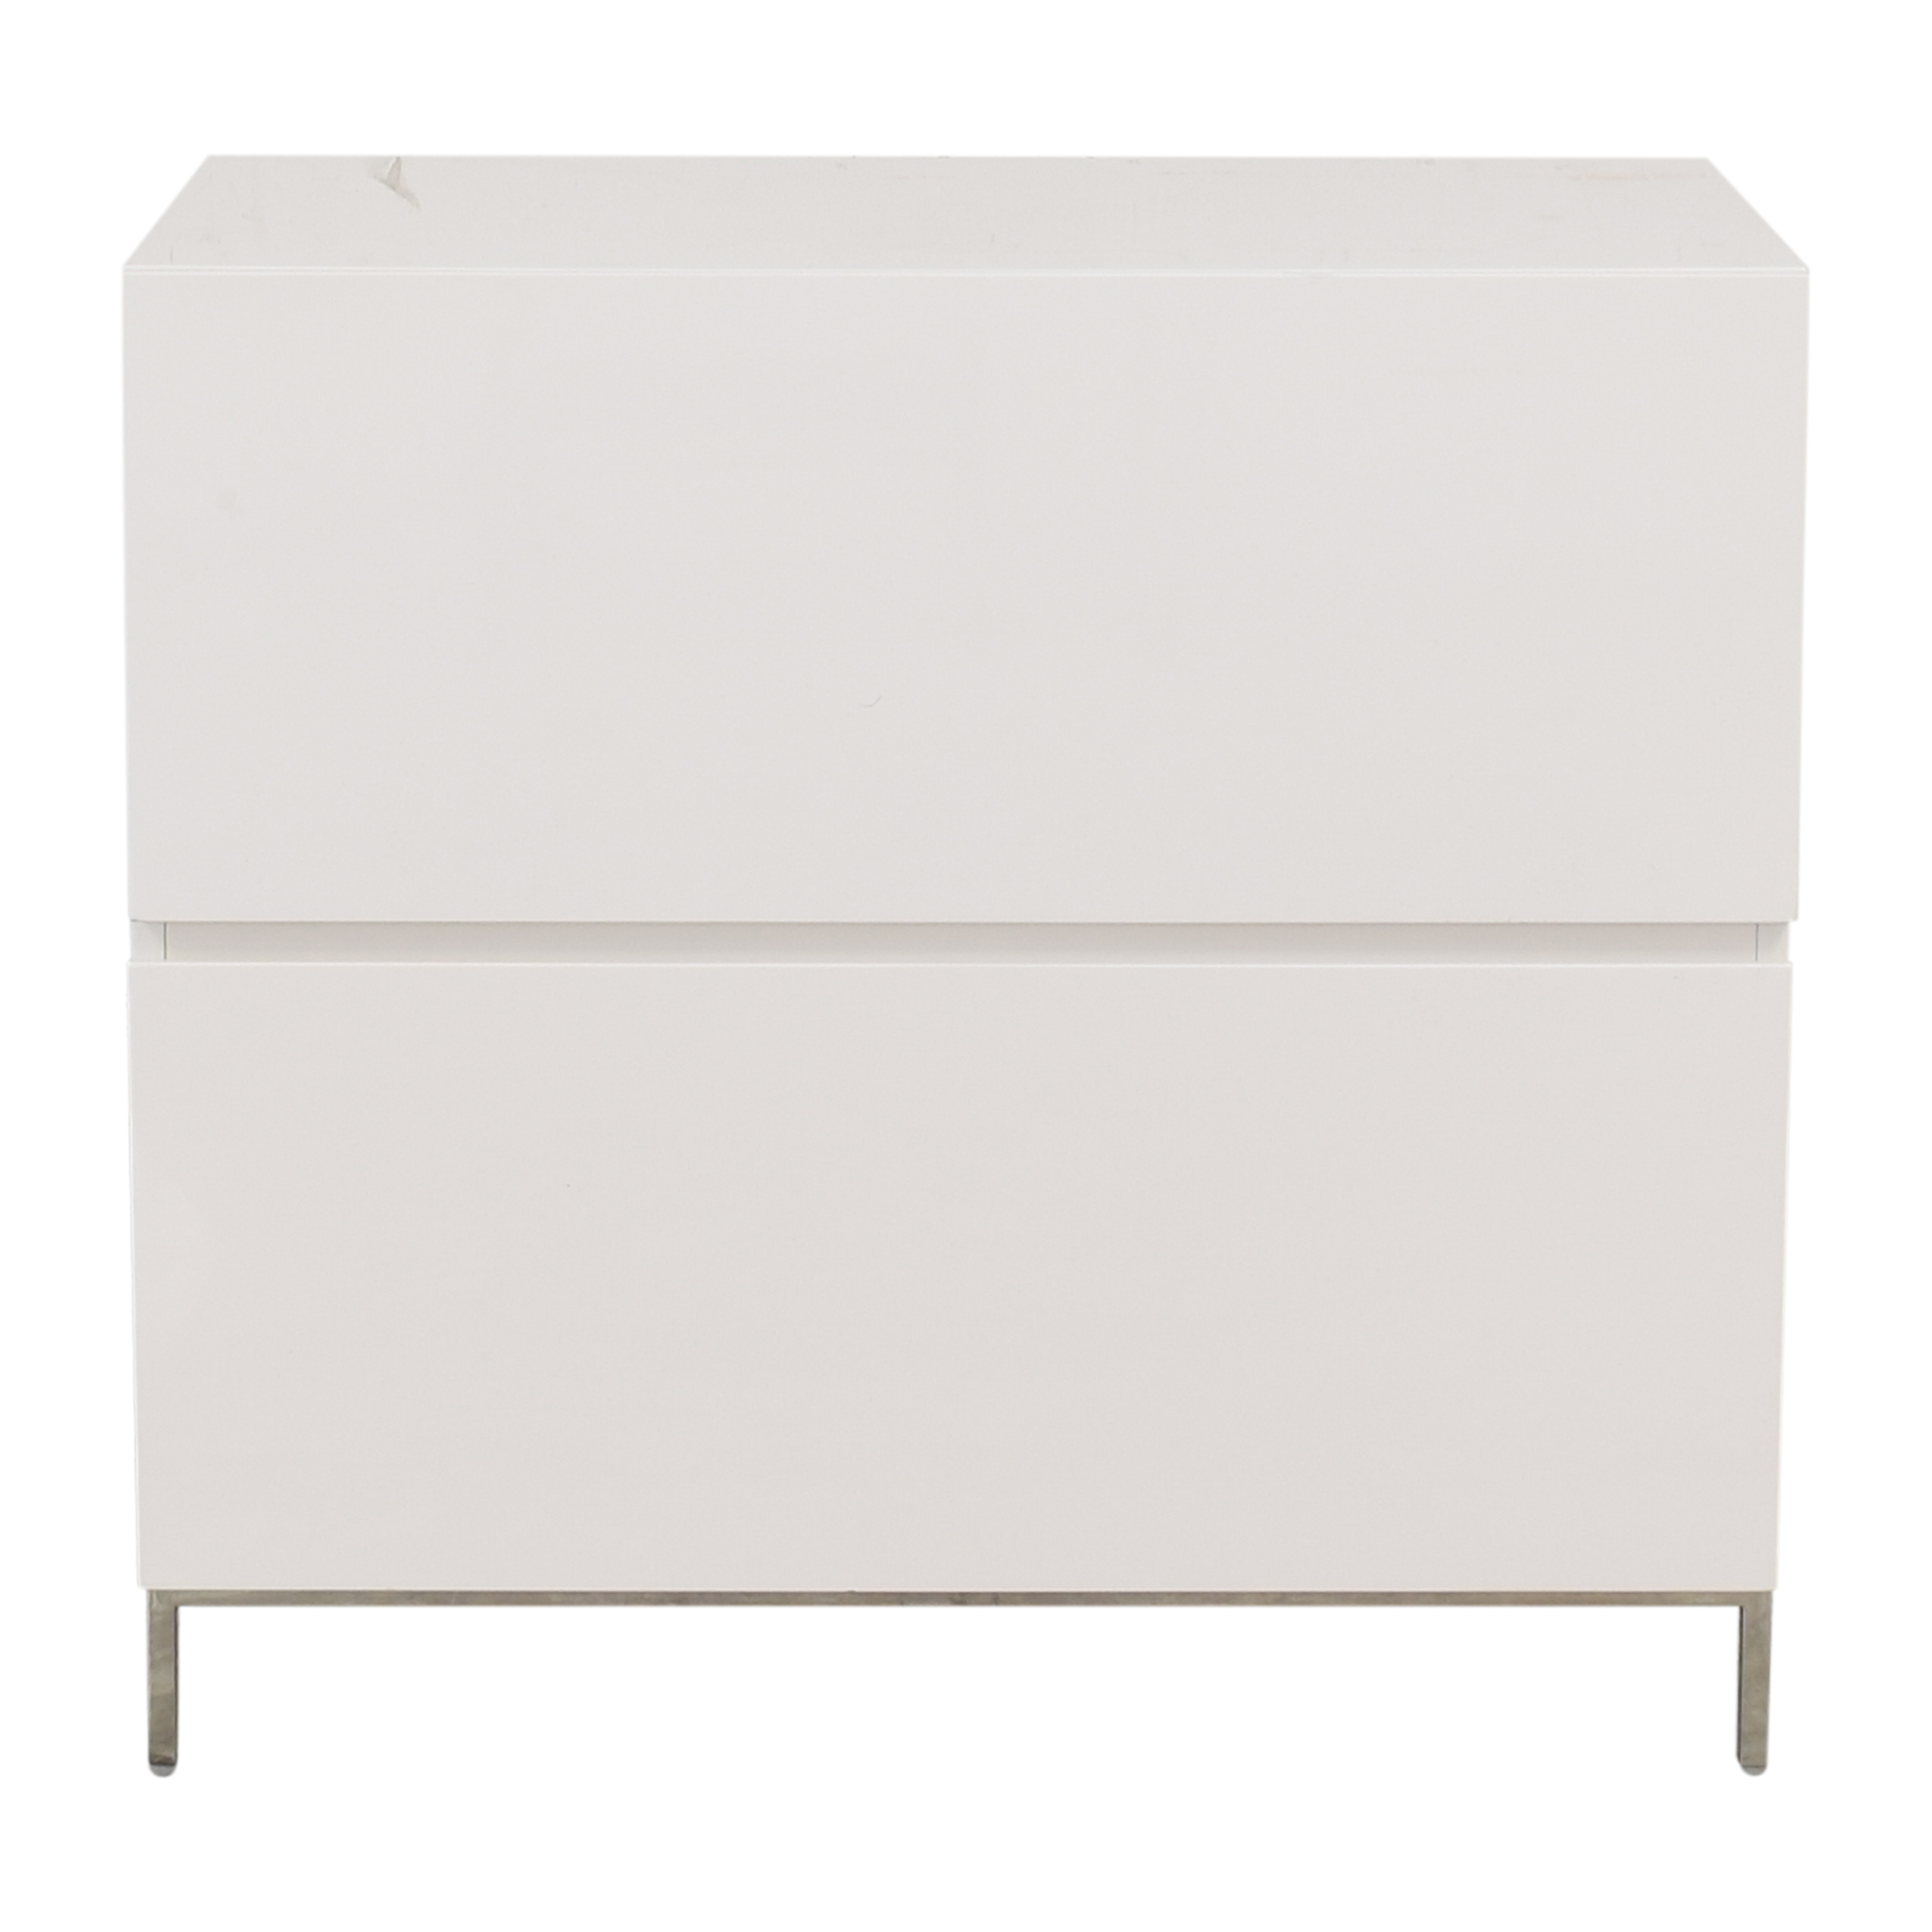 shop West Elm Lacquer Storage Modular Lateral File Cabinet West Elm